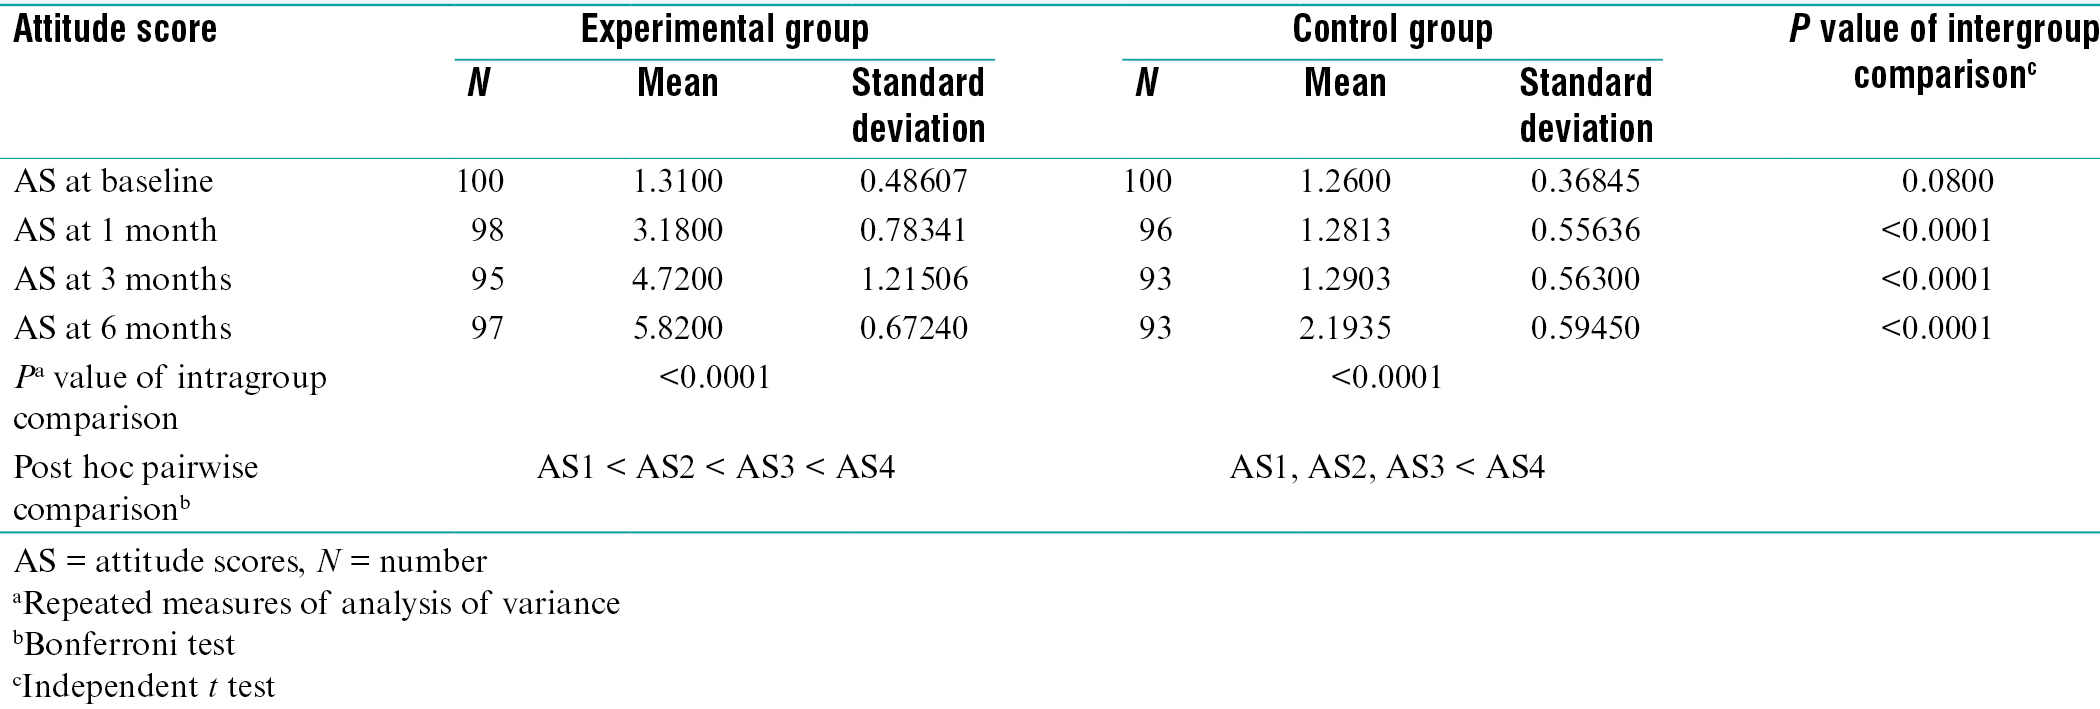 Table 2: Comparison of attitude scores at baseline, 1 month, 3 months, and 6 months